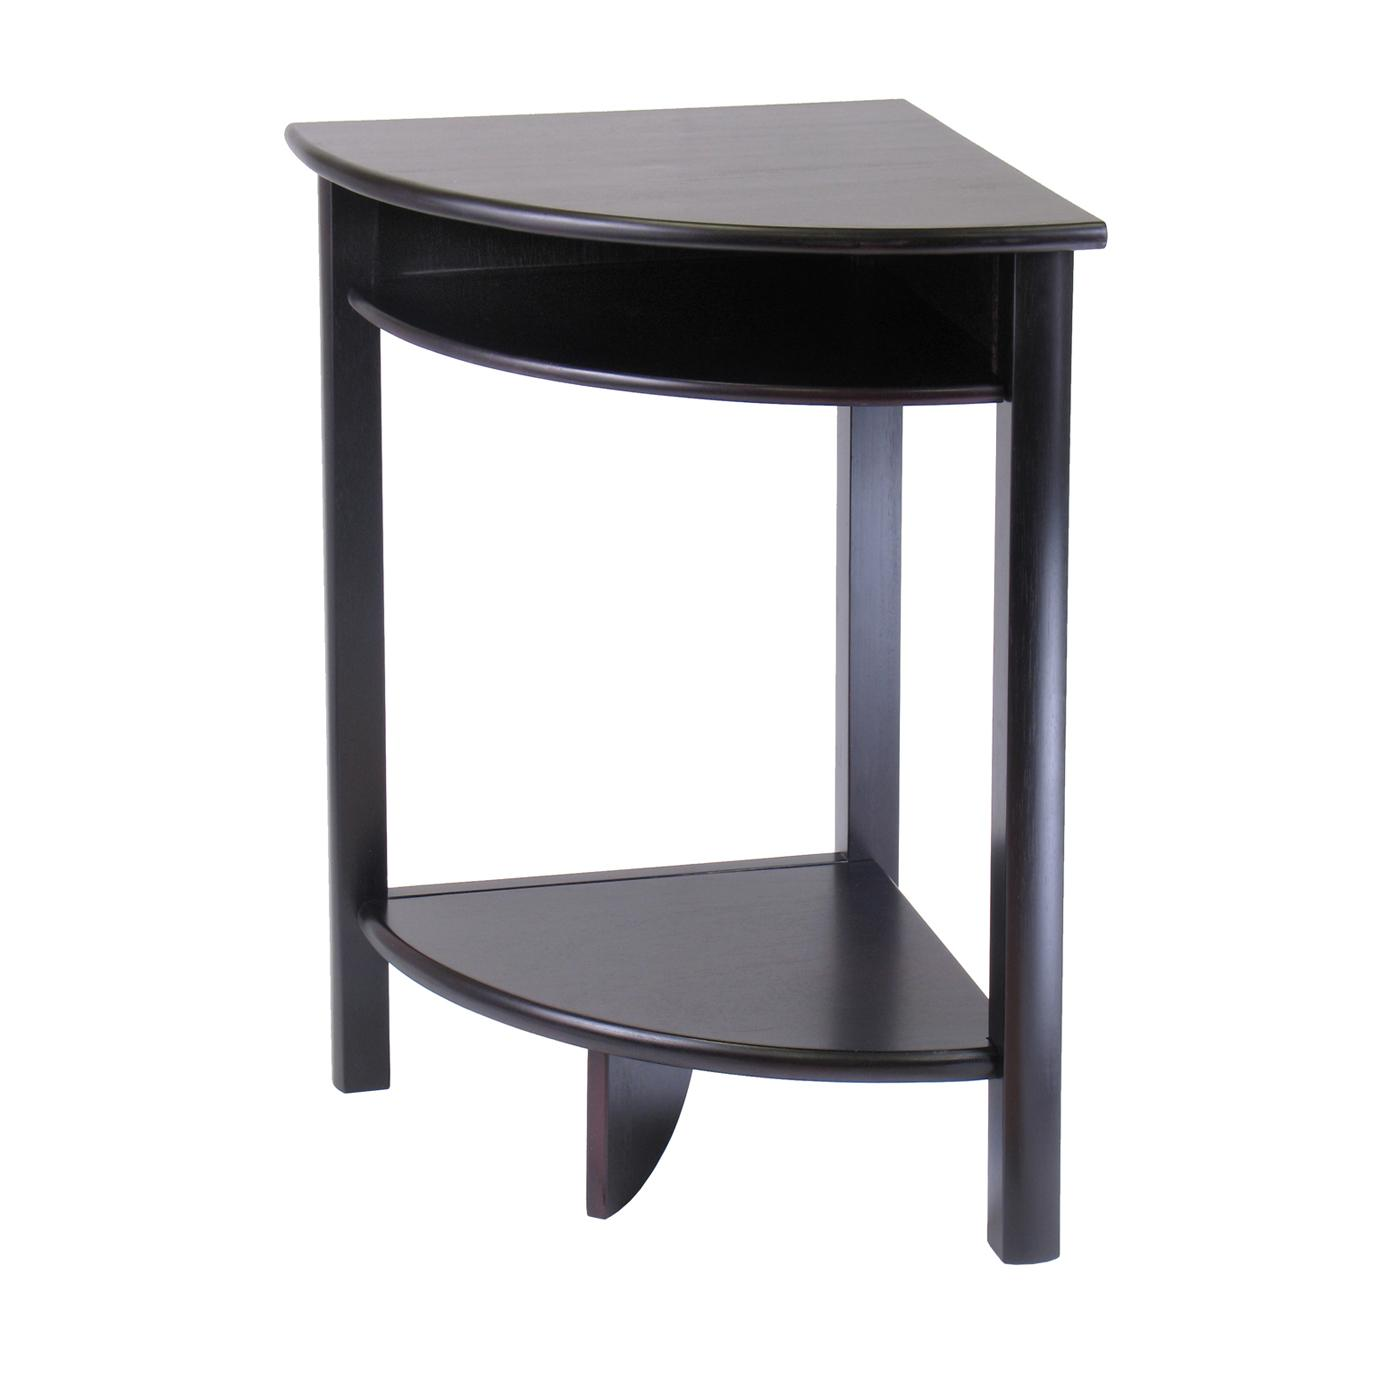 affordable black and white accent chairs furnishings trestle dining awsemone mini corner table for room nate berkus sheets cherry coffee end tables leather pier one cushions